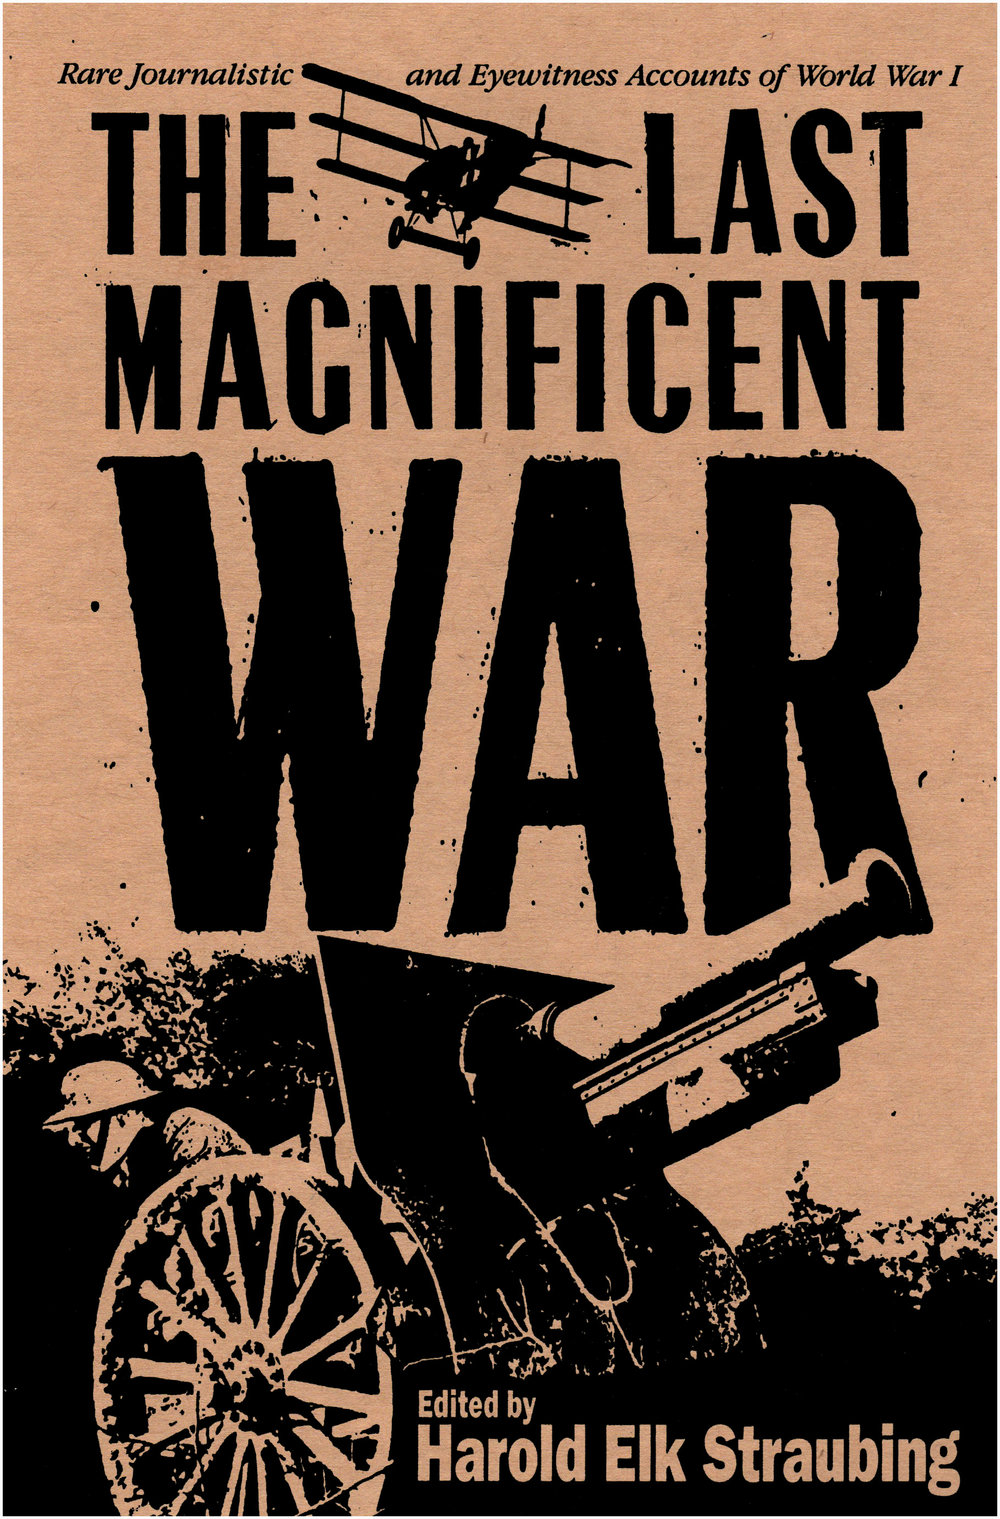 The Last Magnificent War.